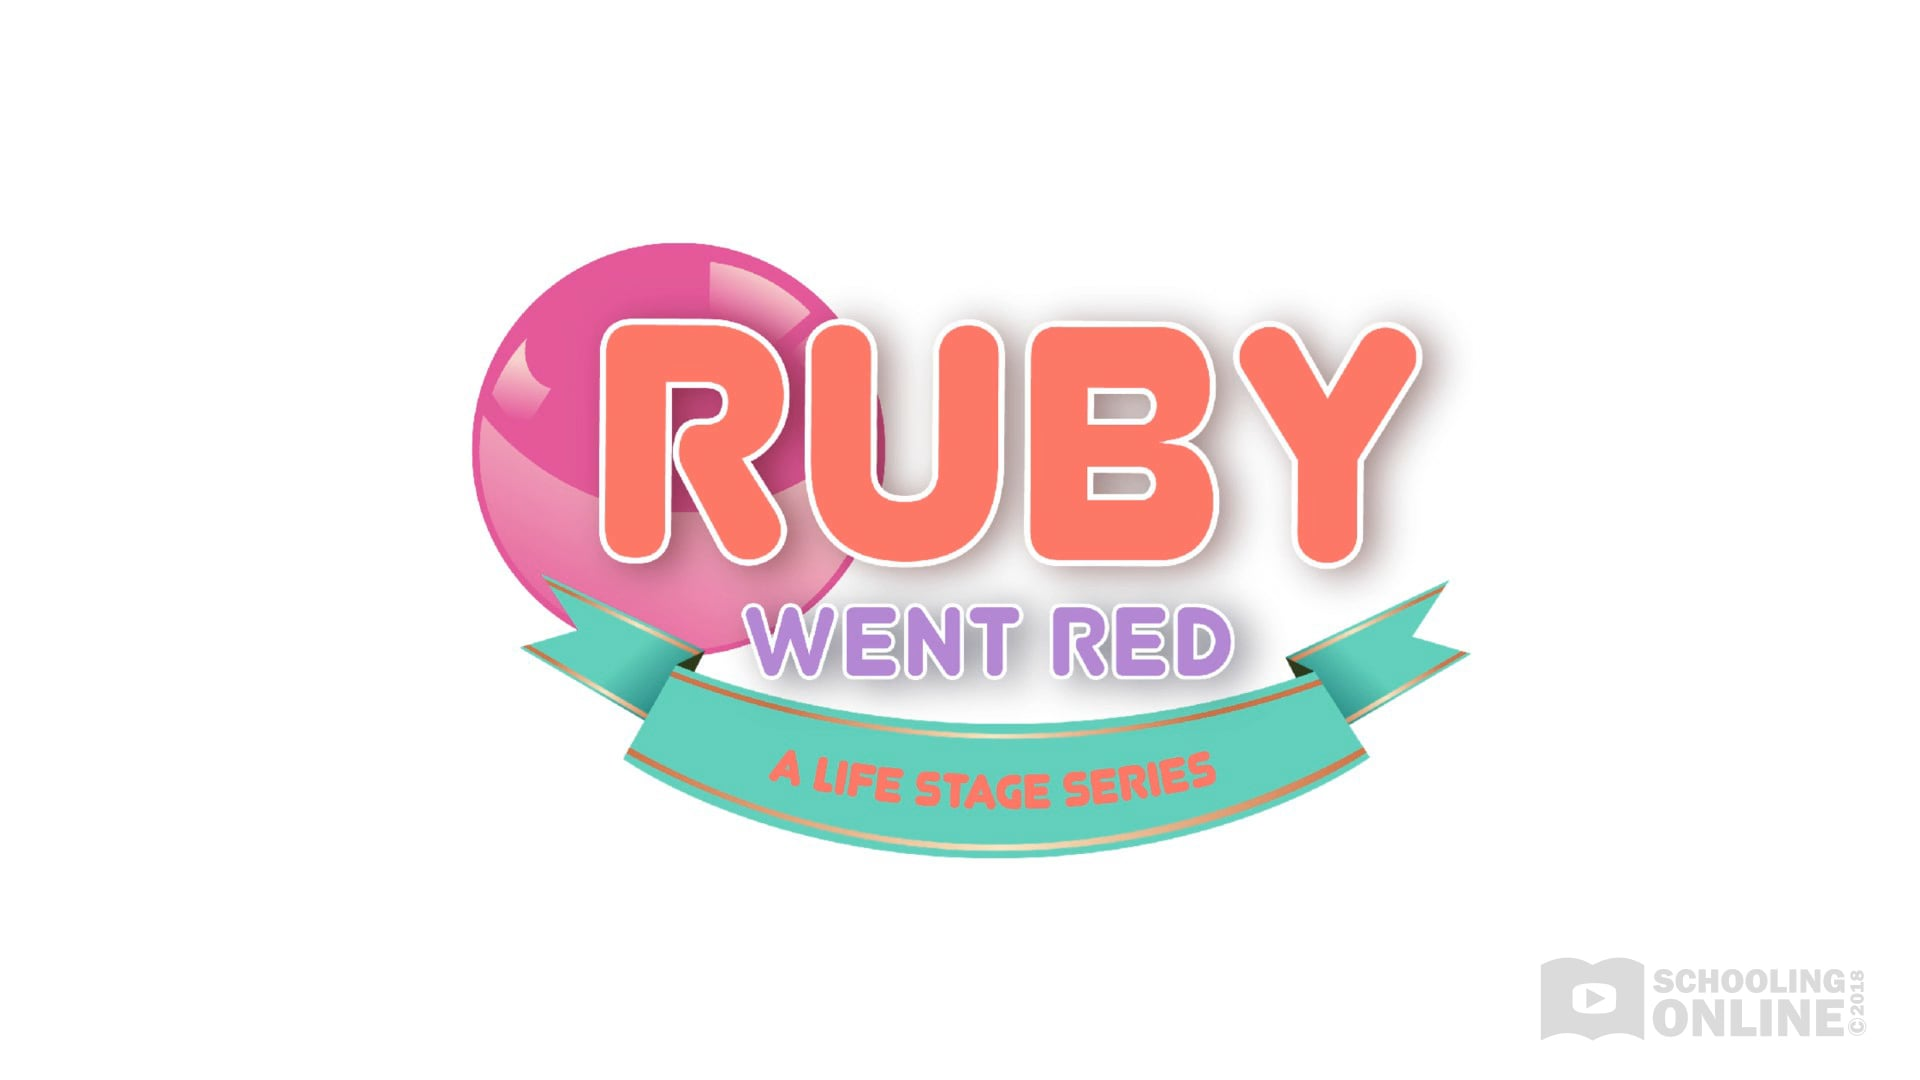 Ruby Went Red - The Life Stage Series